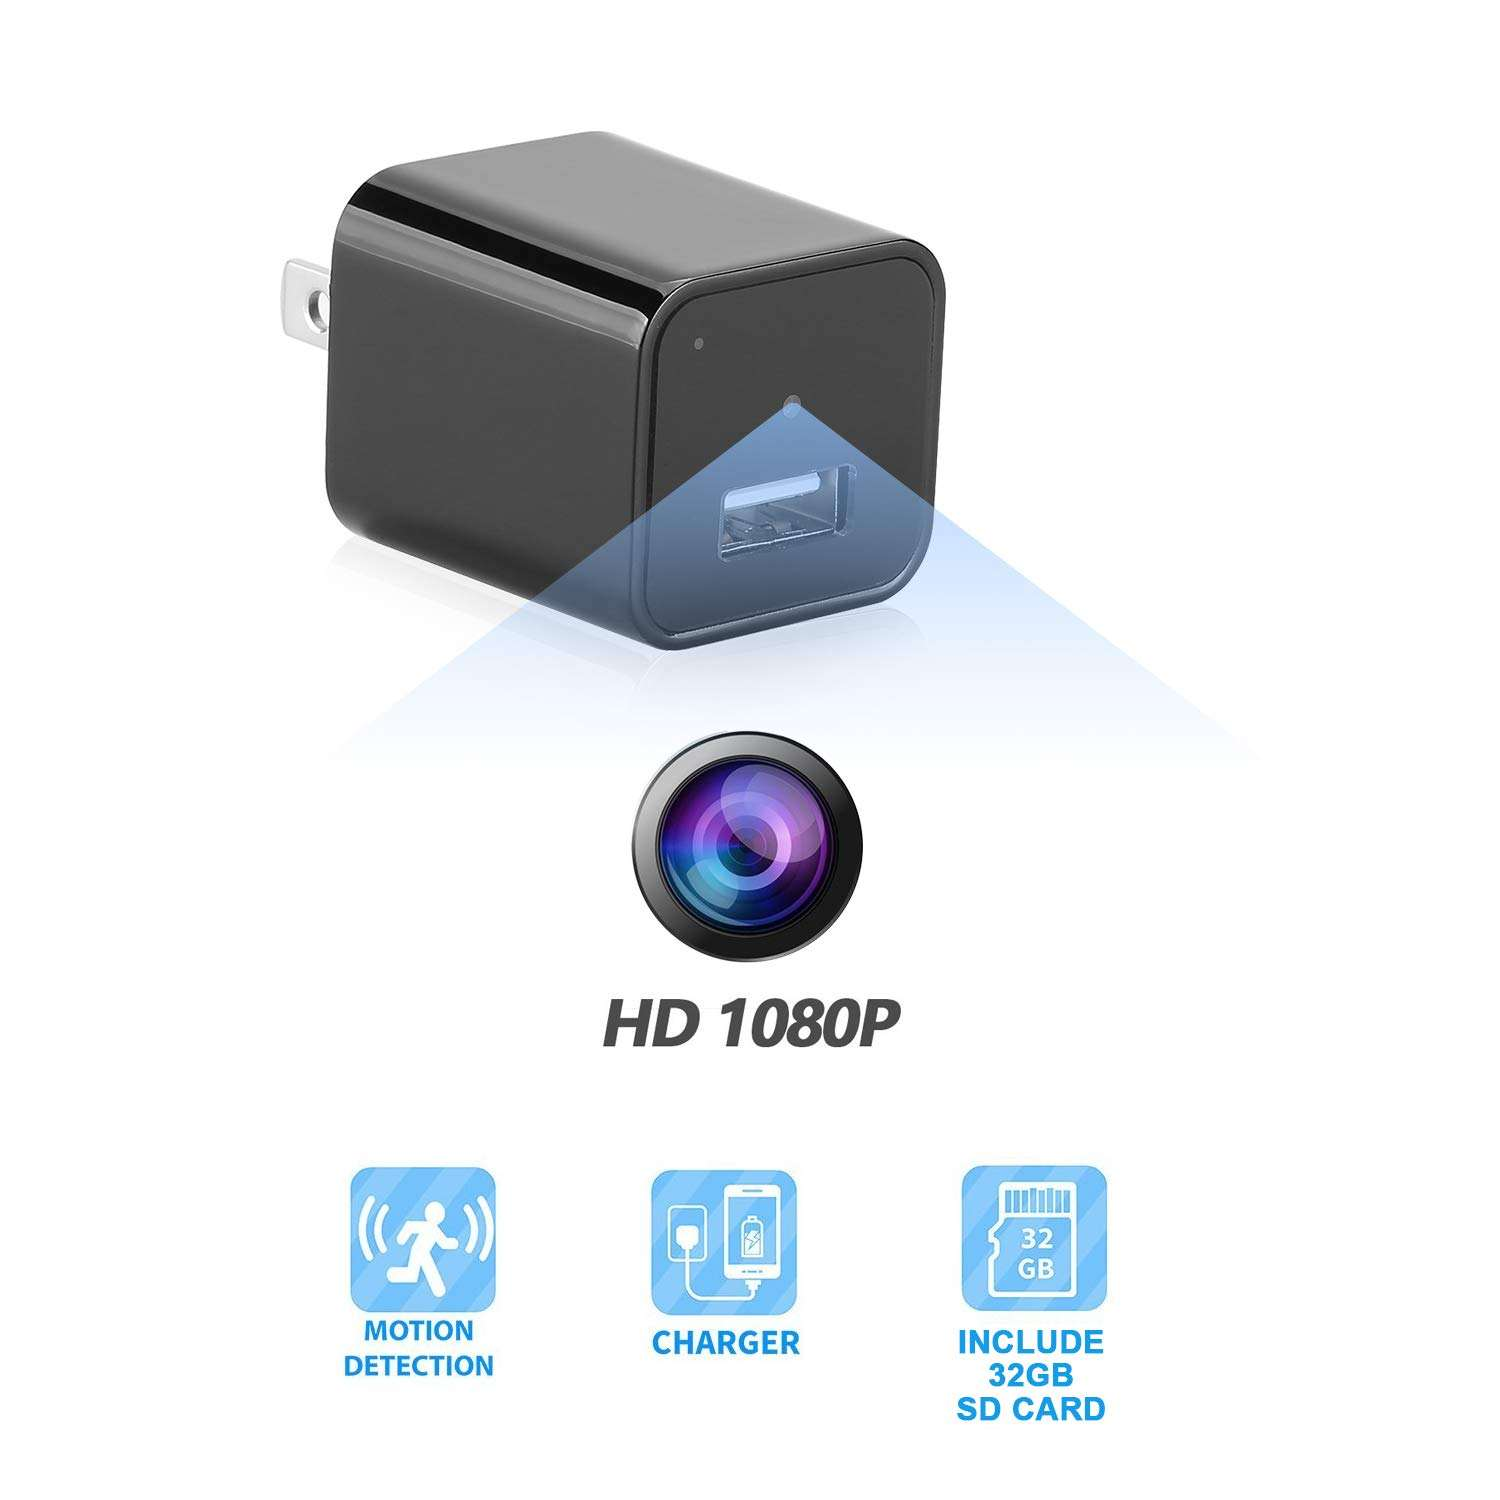 1080p USB Charger Mini Cheap Video Hidden Camera Sale cctv Price Wall Socket Small Hidden Cameras Buy for Homes Sale with Sound